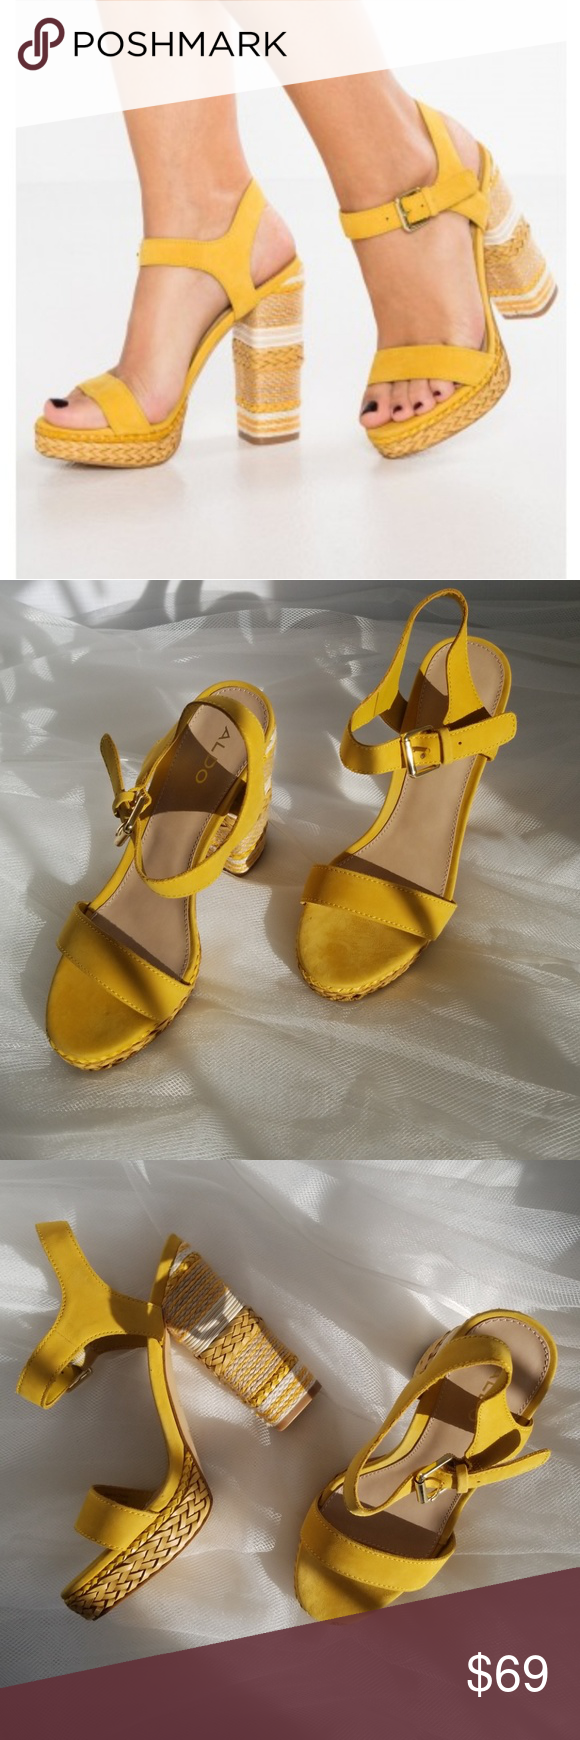 05cec815 Aldo Huglag Mustard Sandals - NWT Rock this block heel sandal to elevate  warm-weather